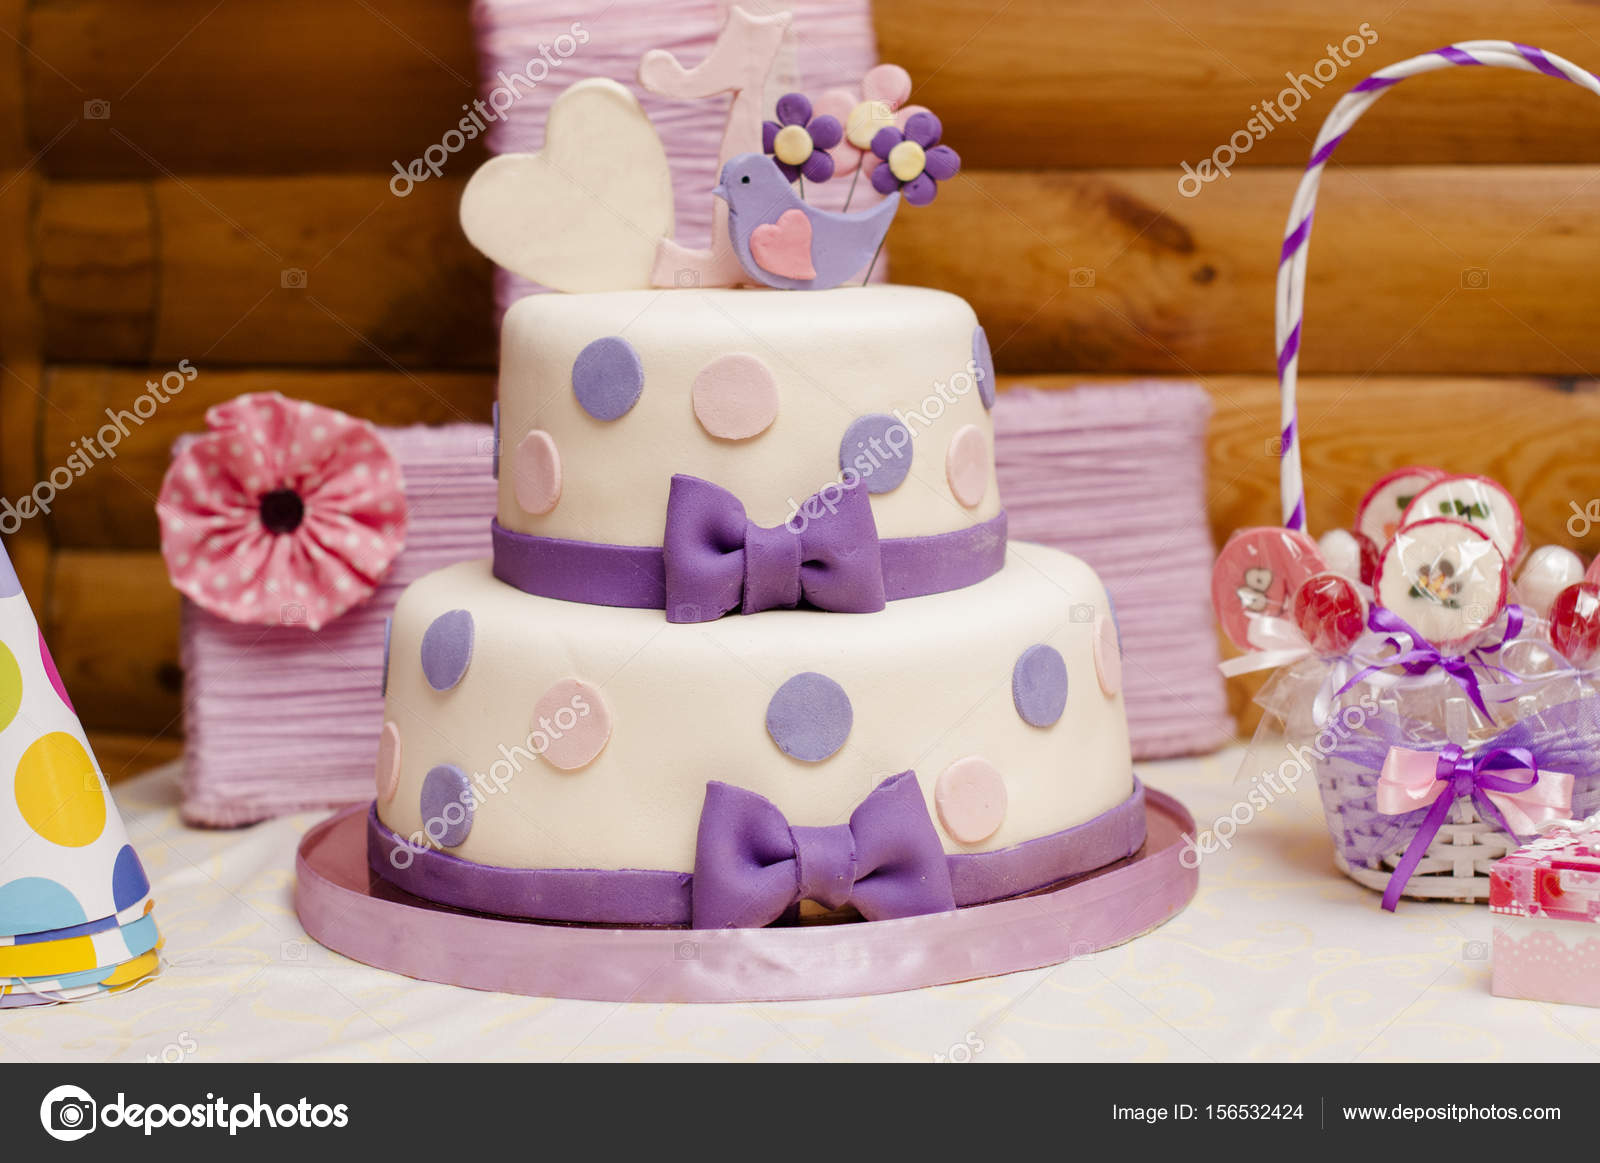 Twotier birthday cake Stock Photo nkrivko 156532424